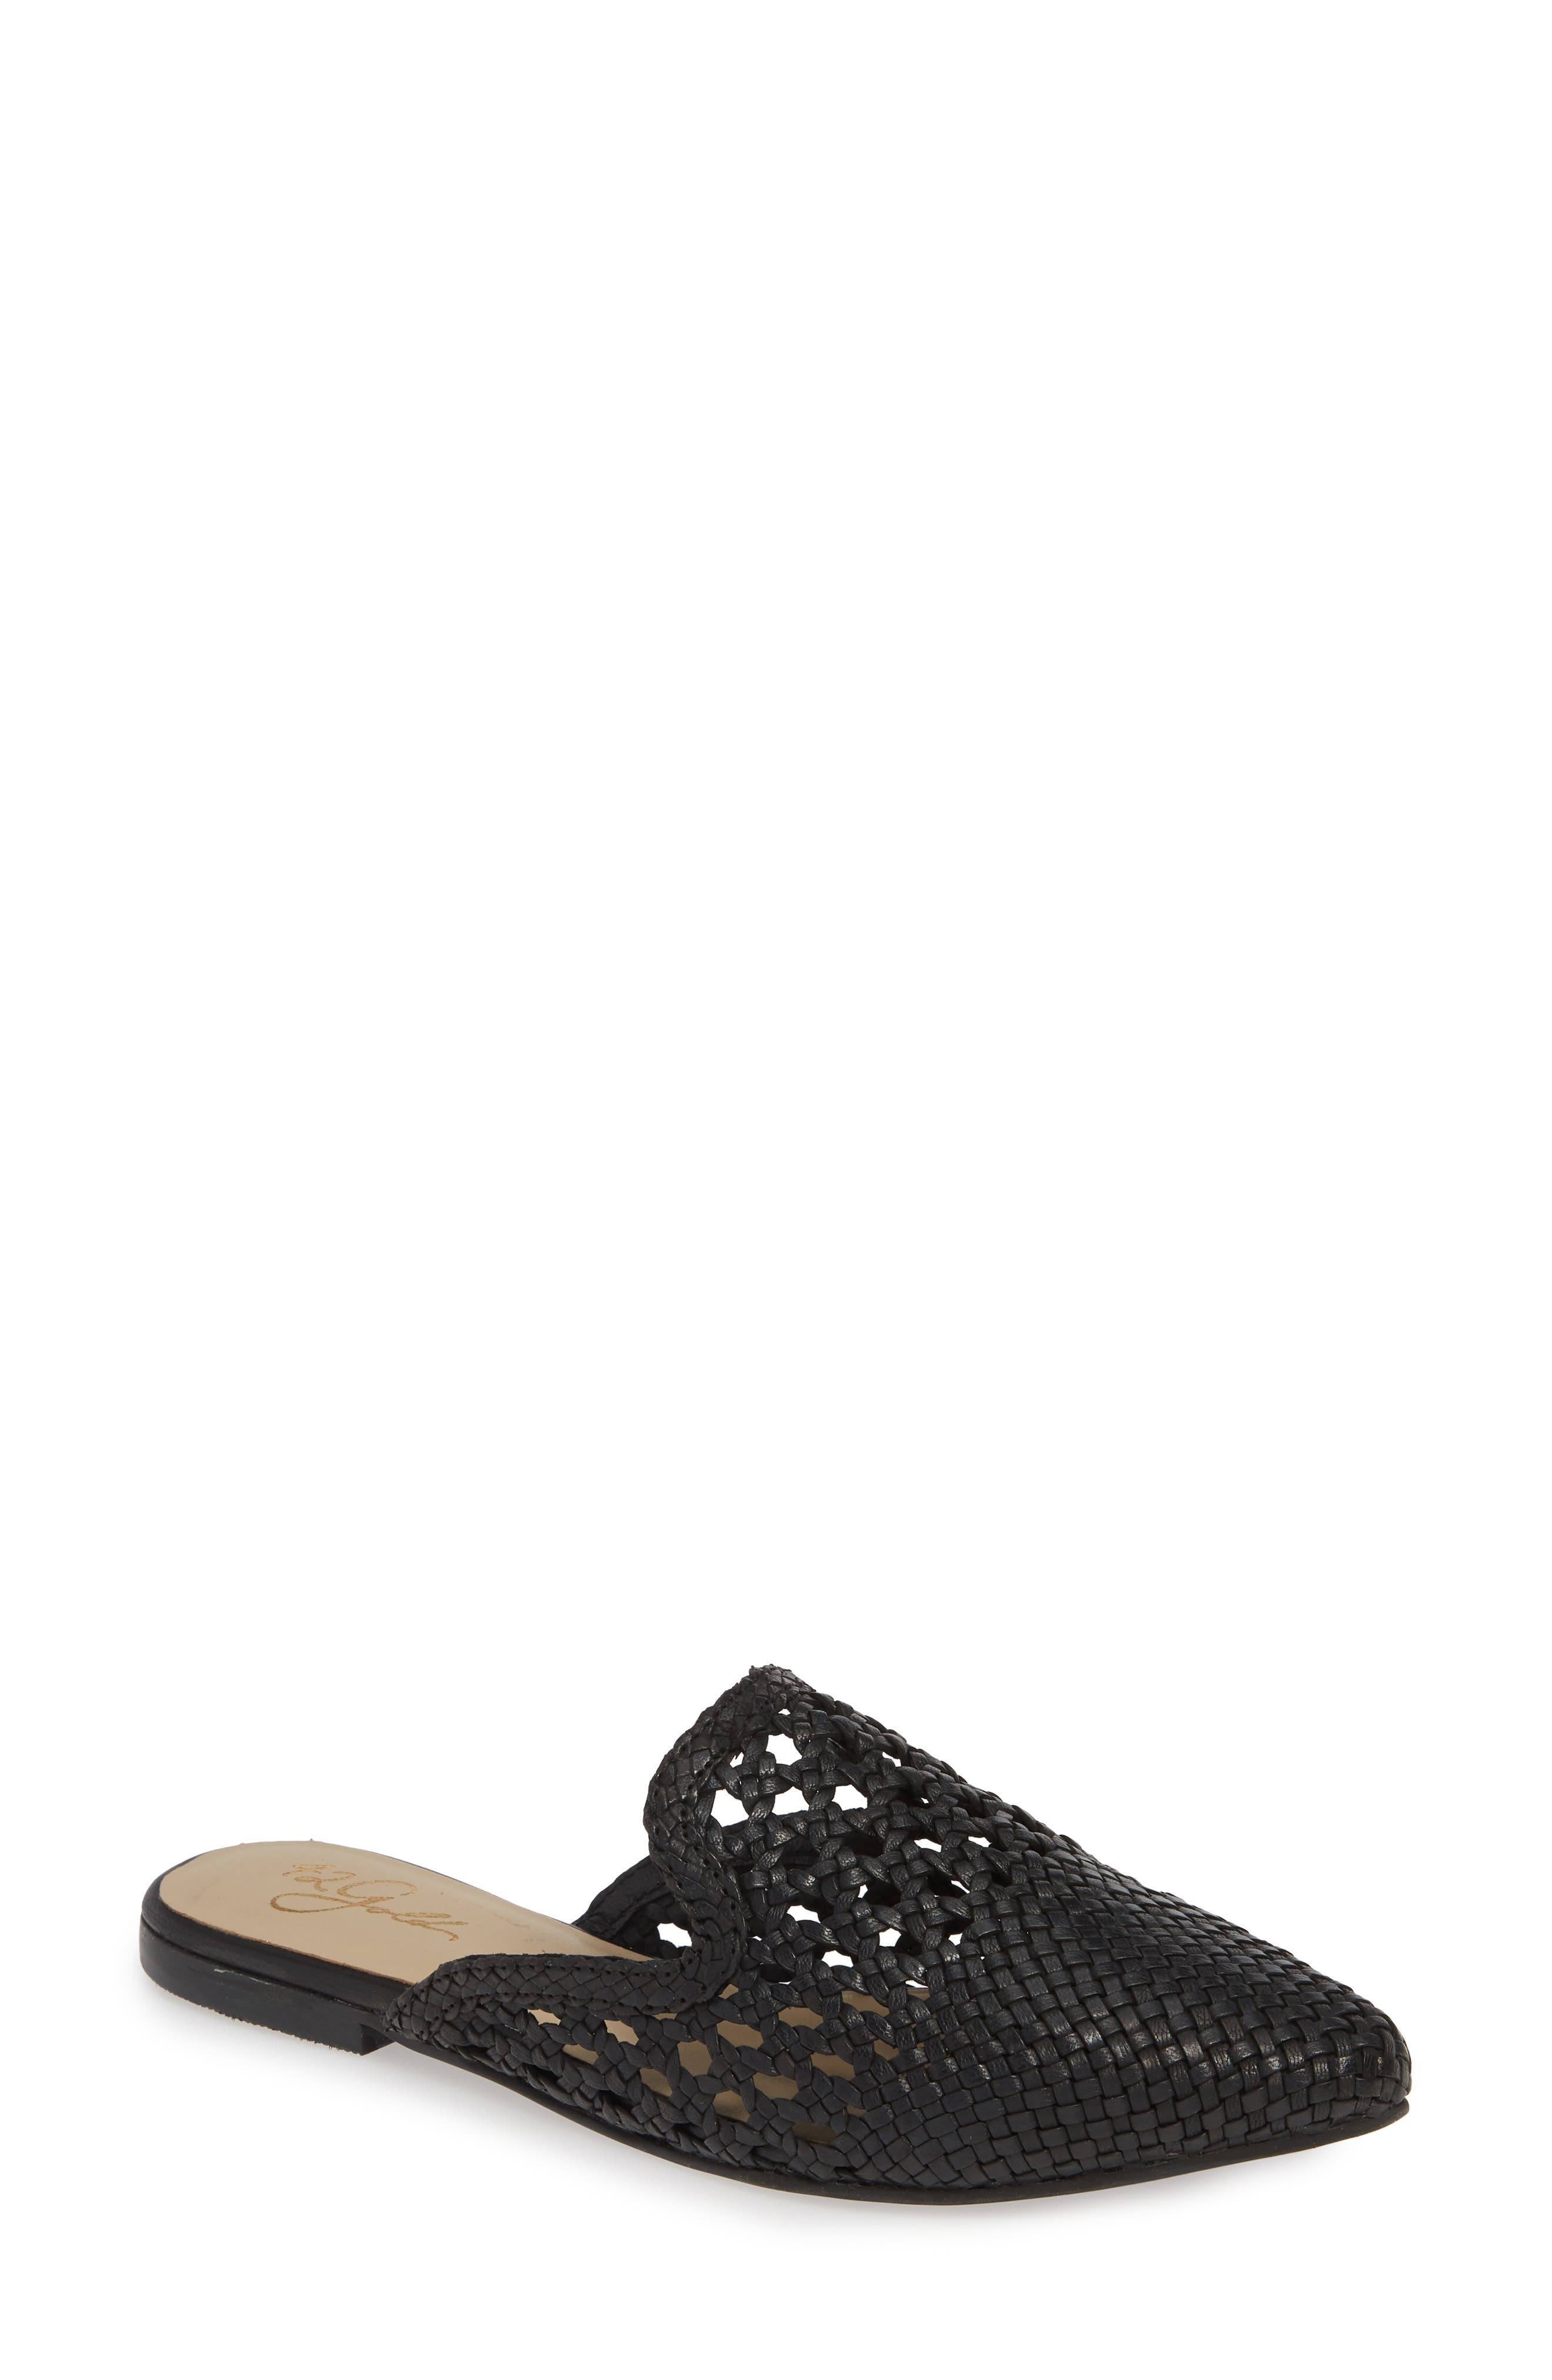 Corra Woven Loafer Mule, Main, color, BLACK LEATHER